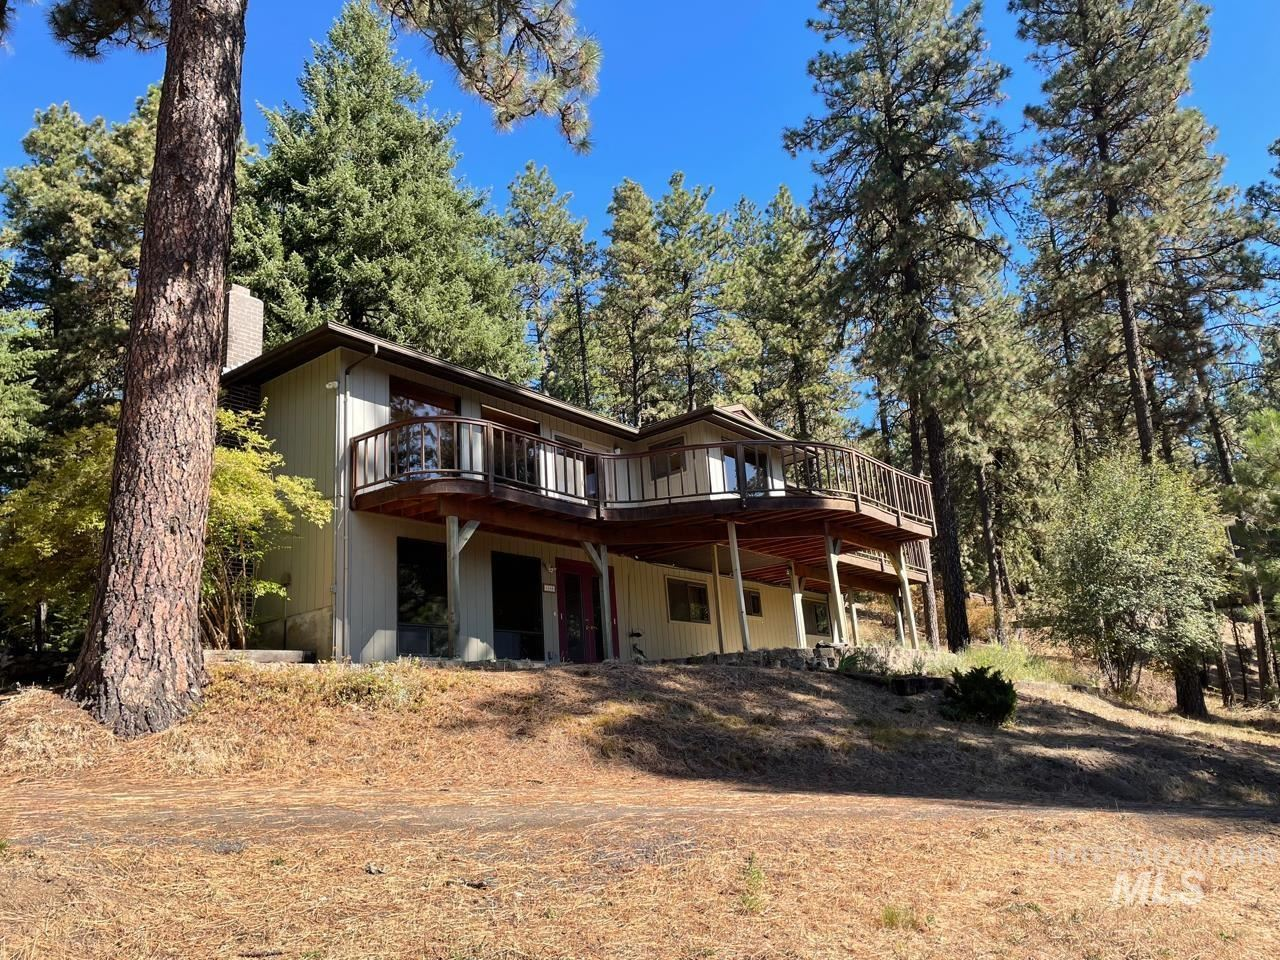 Photo of 1148 Nearing, Moscow, ID 83843 (MLS # 98817437)